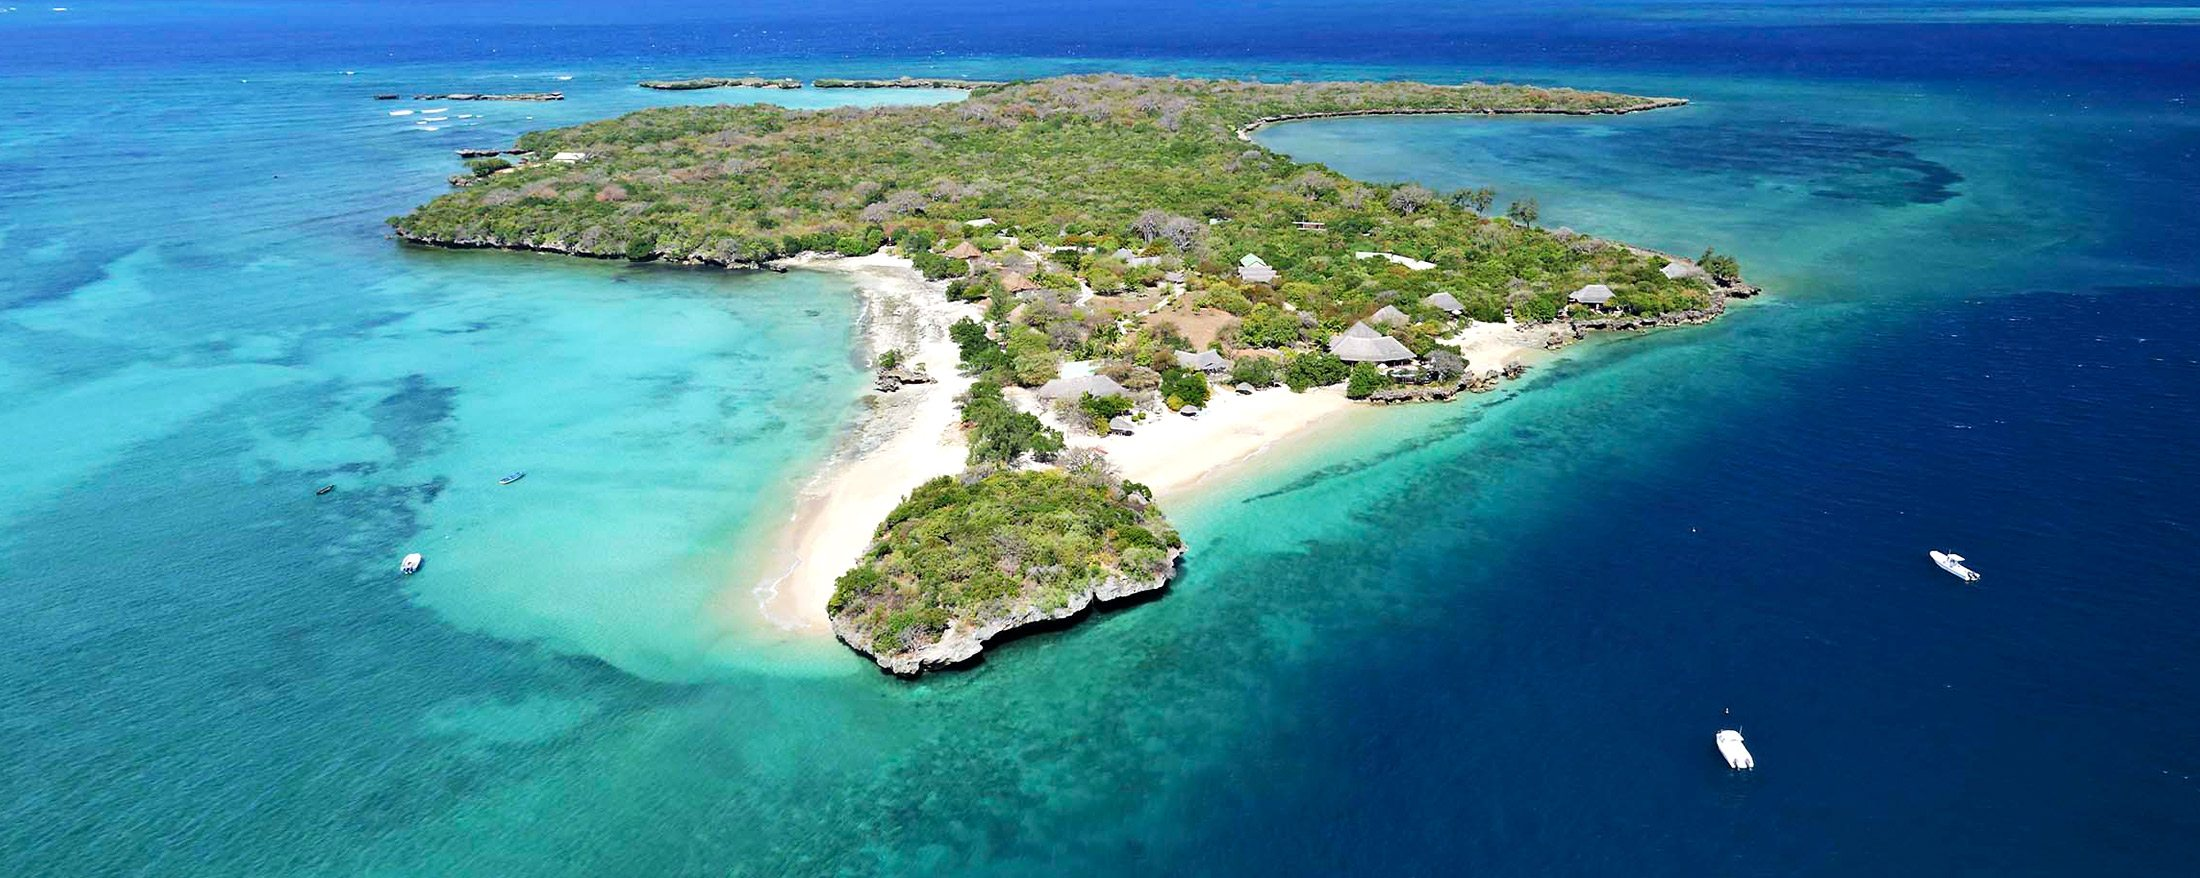 Getting to the remote Azura Quilalea Private Island involves an exciting helicopter ride.